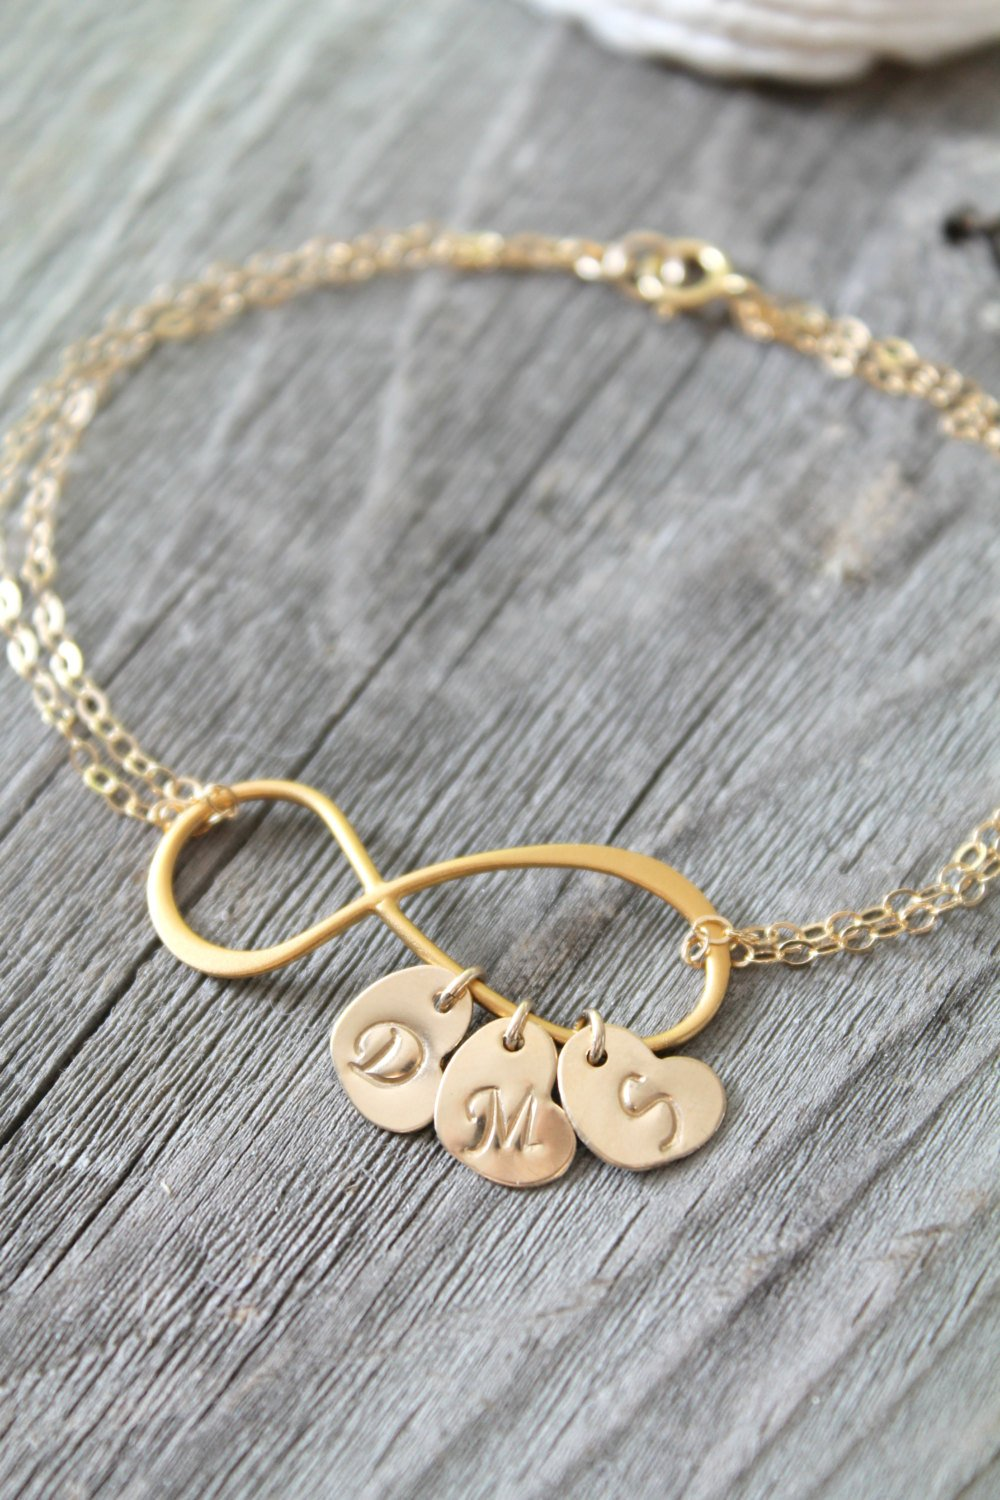 2021 Personalized infinity bracelet initial heart gold fil 14k Max 66% OFF tags